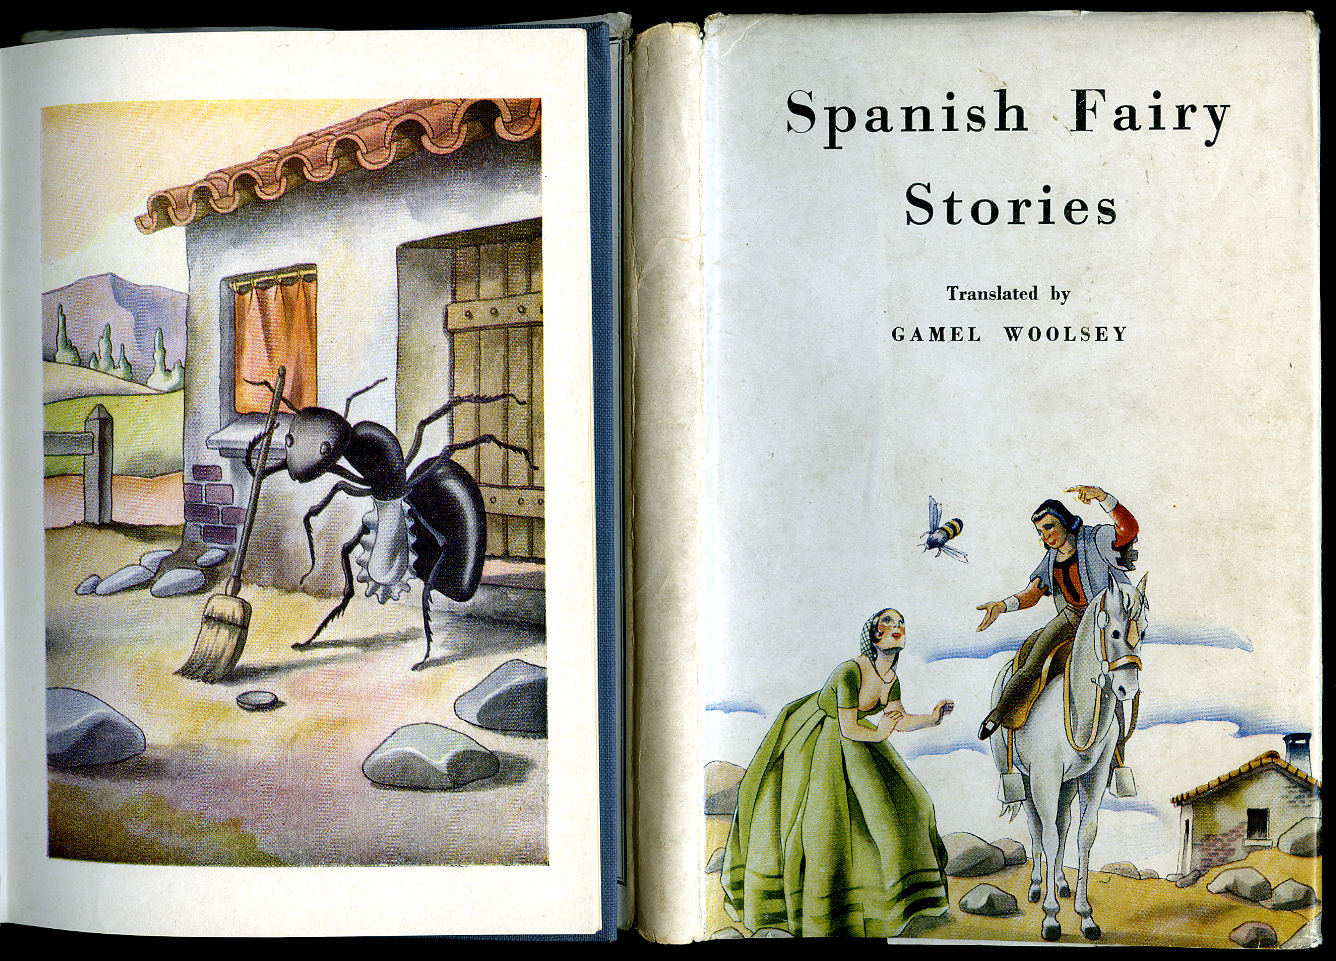 TRANSLATED BY GAMEL WOOLSEY [ILLUSTRATED BY JOSEP GAUSACHS ARMENGOL]. - Spanish Fairy Stories